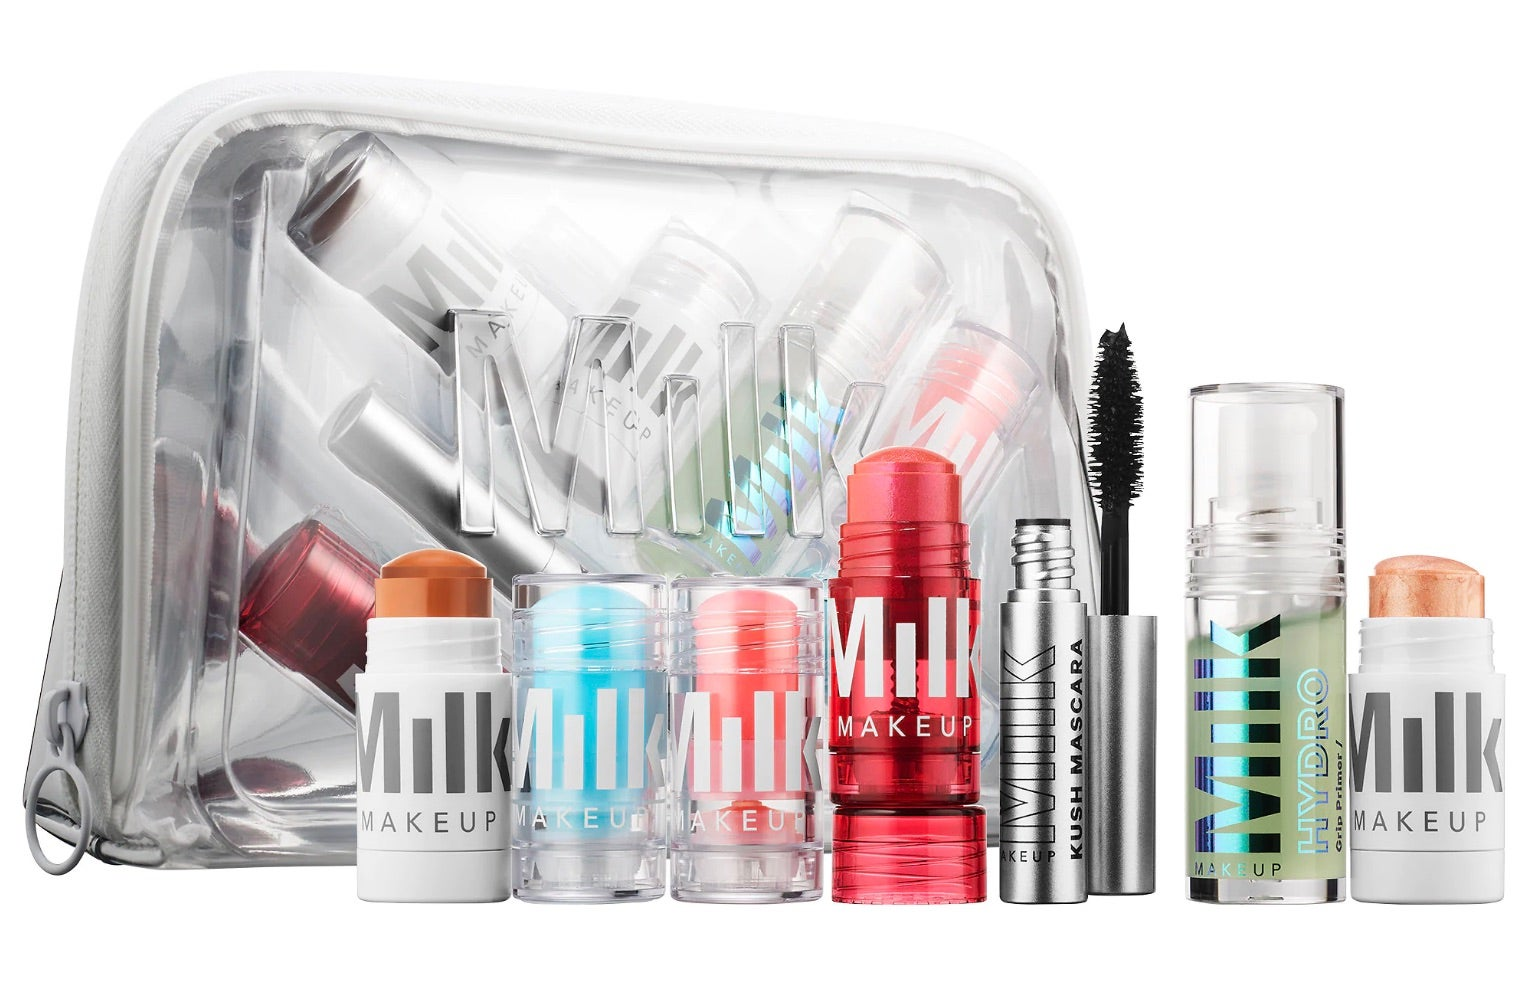 MILK MAKEUP MVPs Set